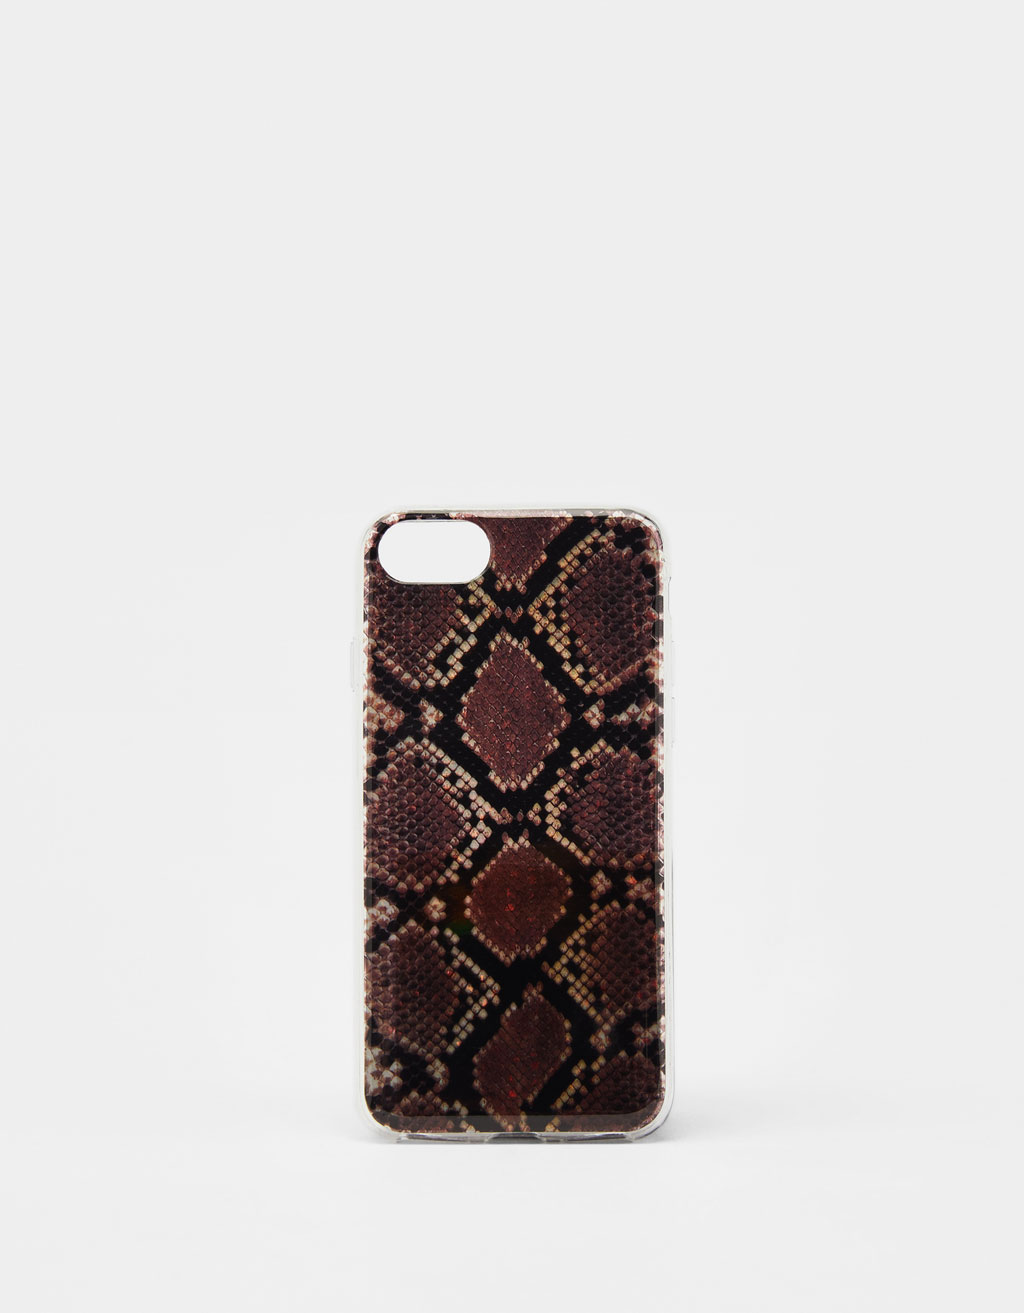 Carcasa Serpiente iPhone 6 / 6s / 7 / 8